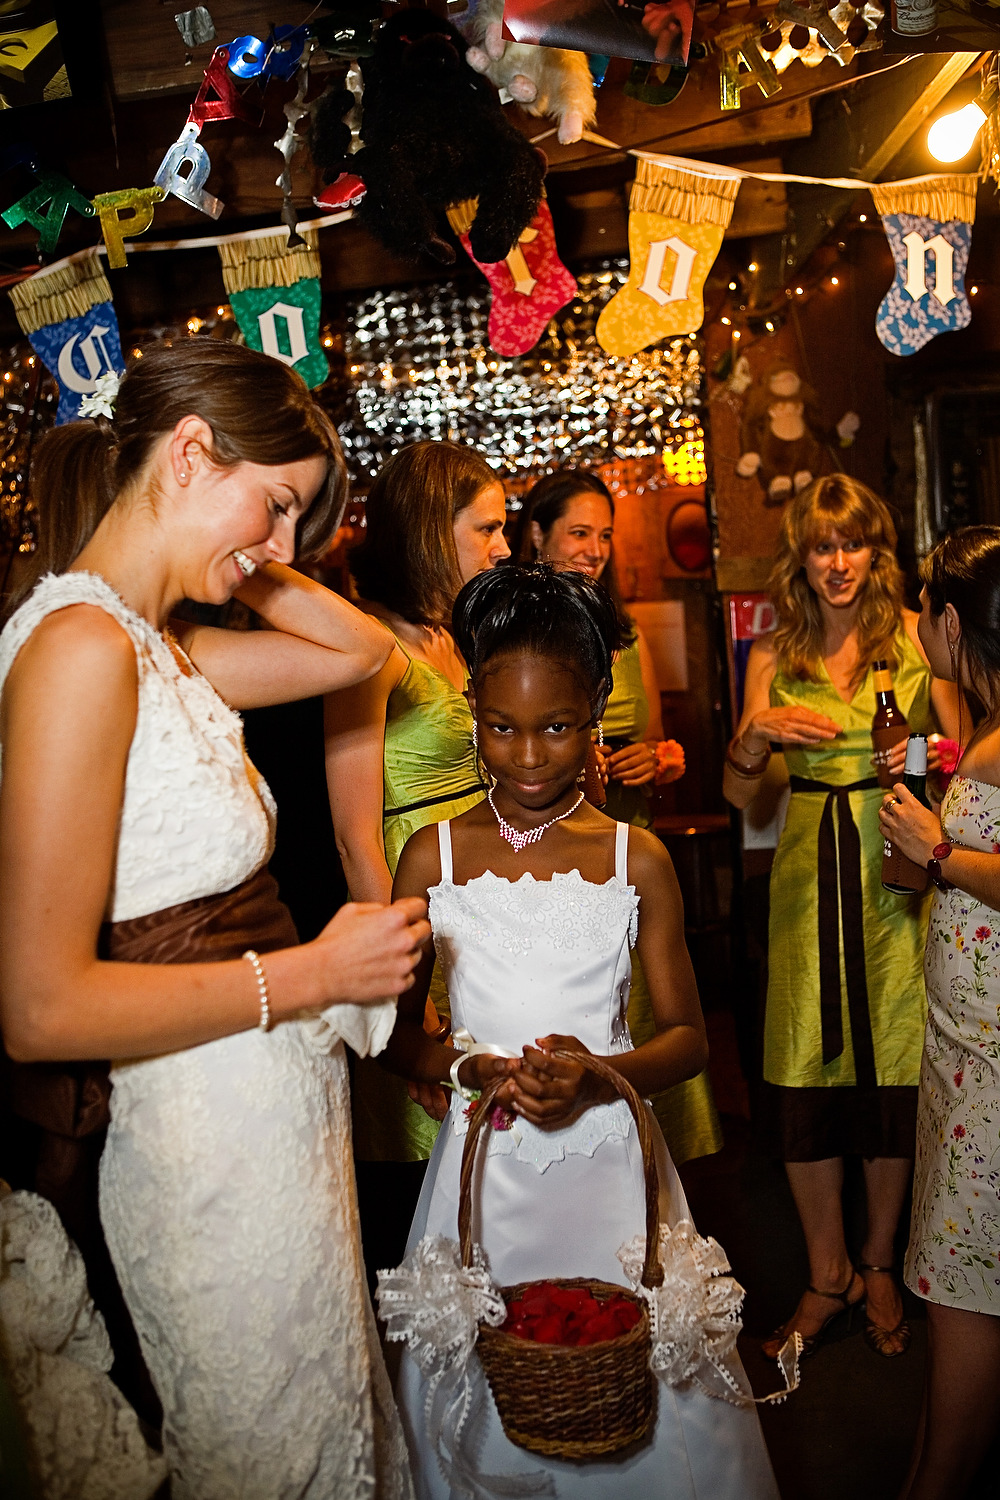 Kate, the bride (left), with Seaberry's granddaughter, an attendant in the wedding (inside the juke joint prior to the start).